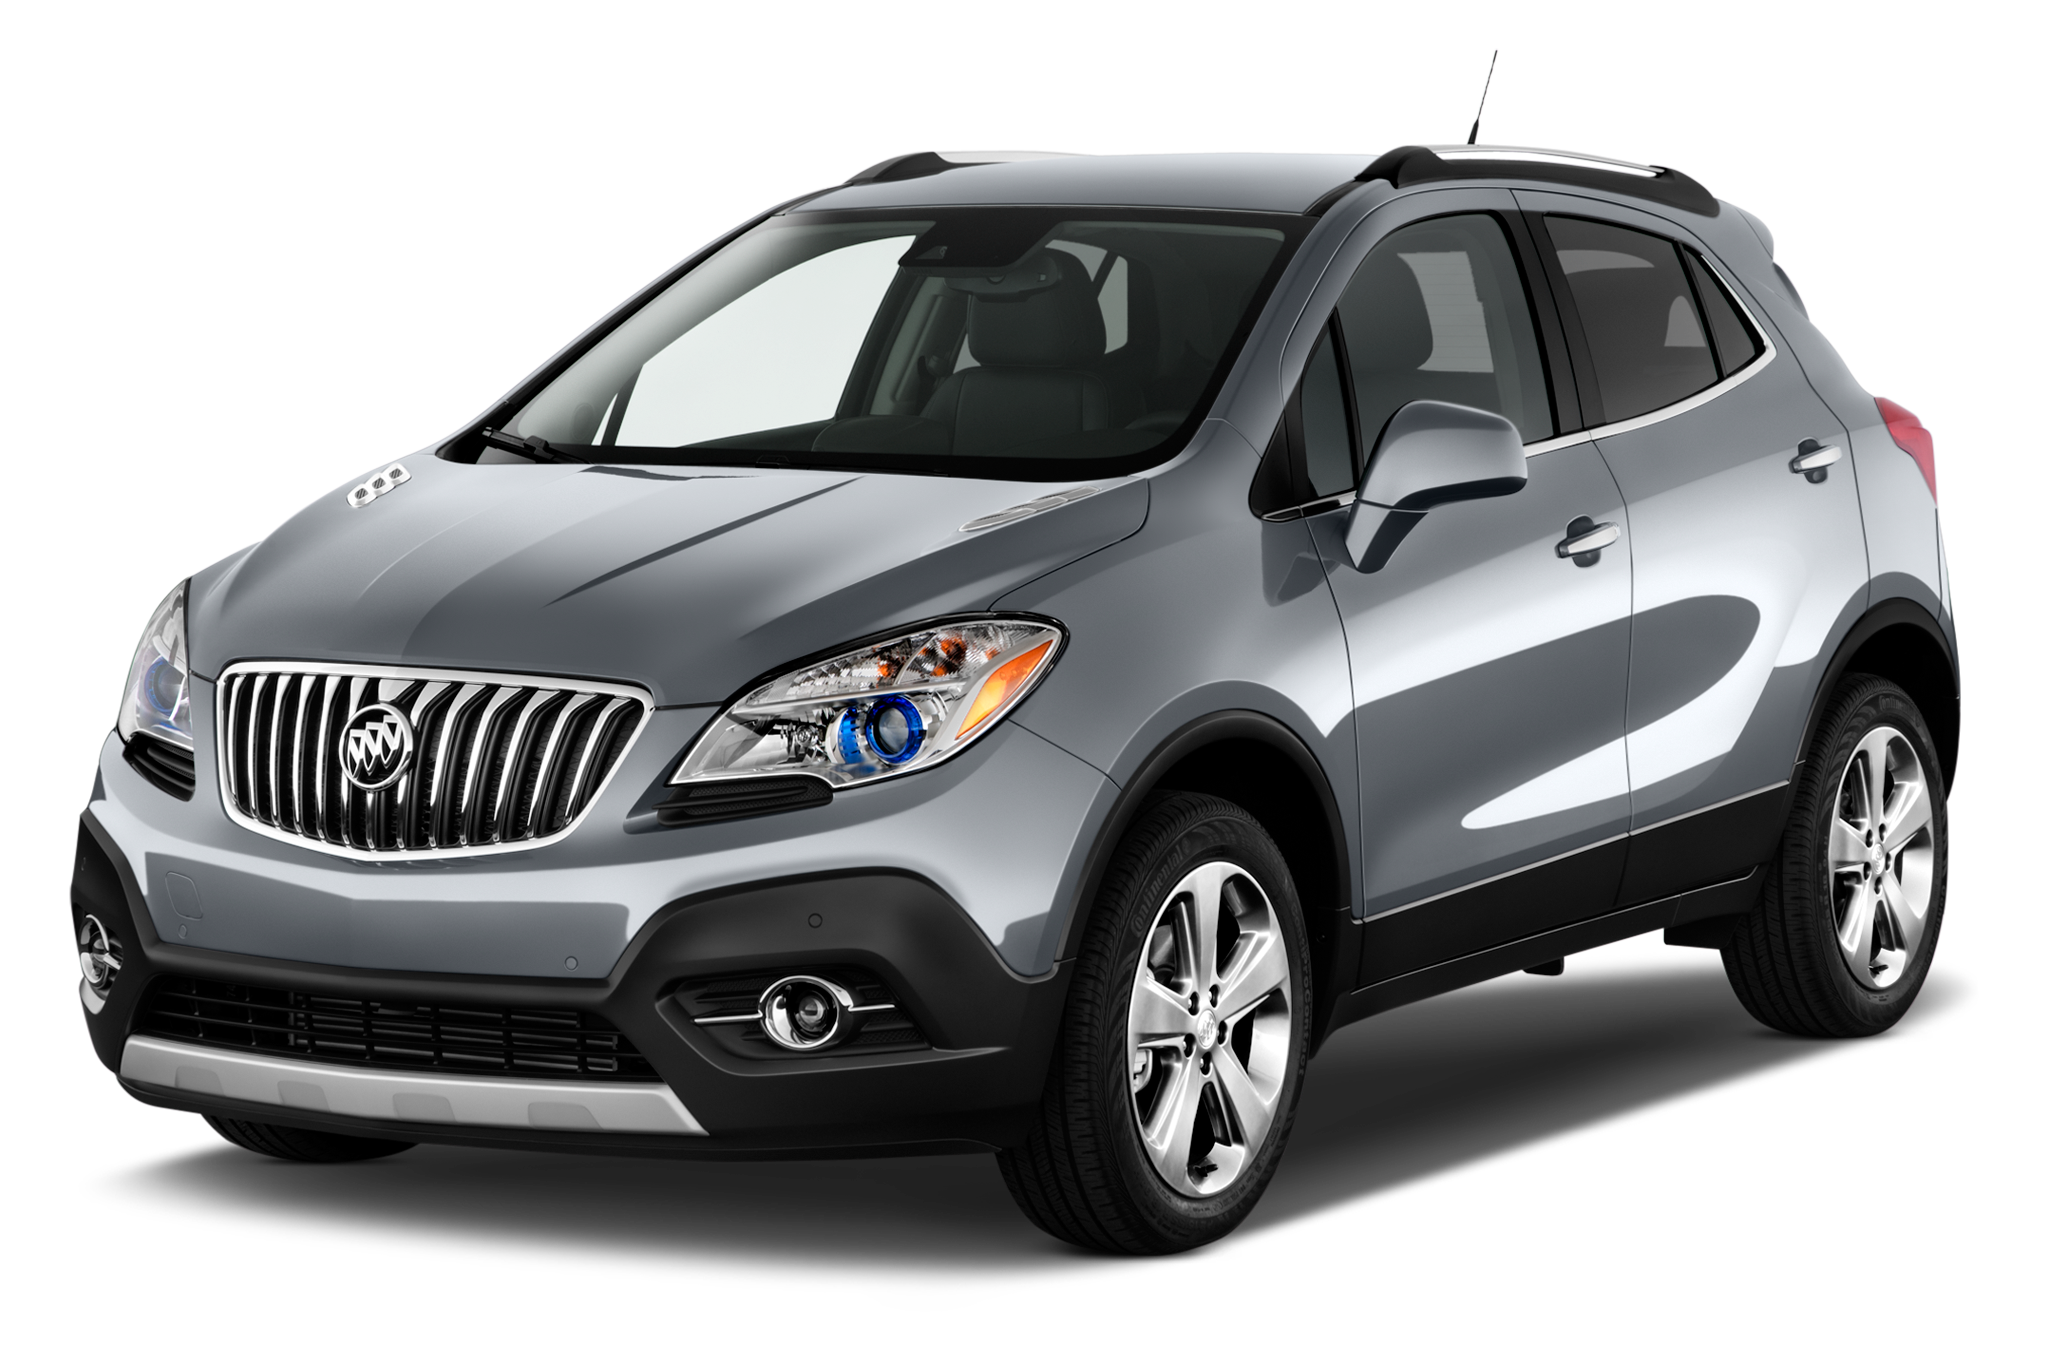 image buick enclave wallpaper post suv red